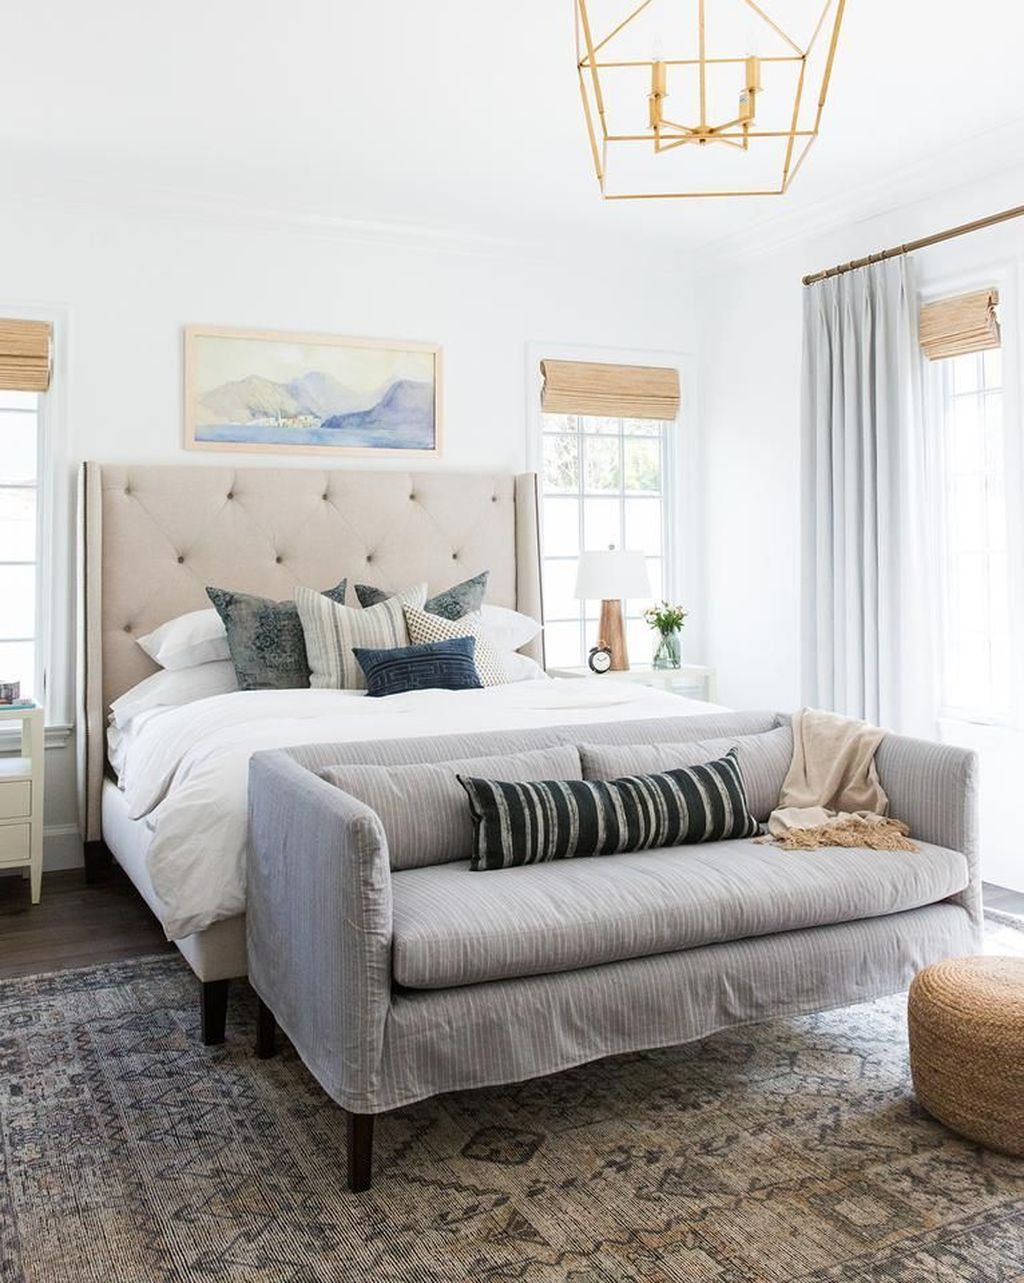 Lovely Lake Bedroom Decorating Ideas 13